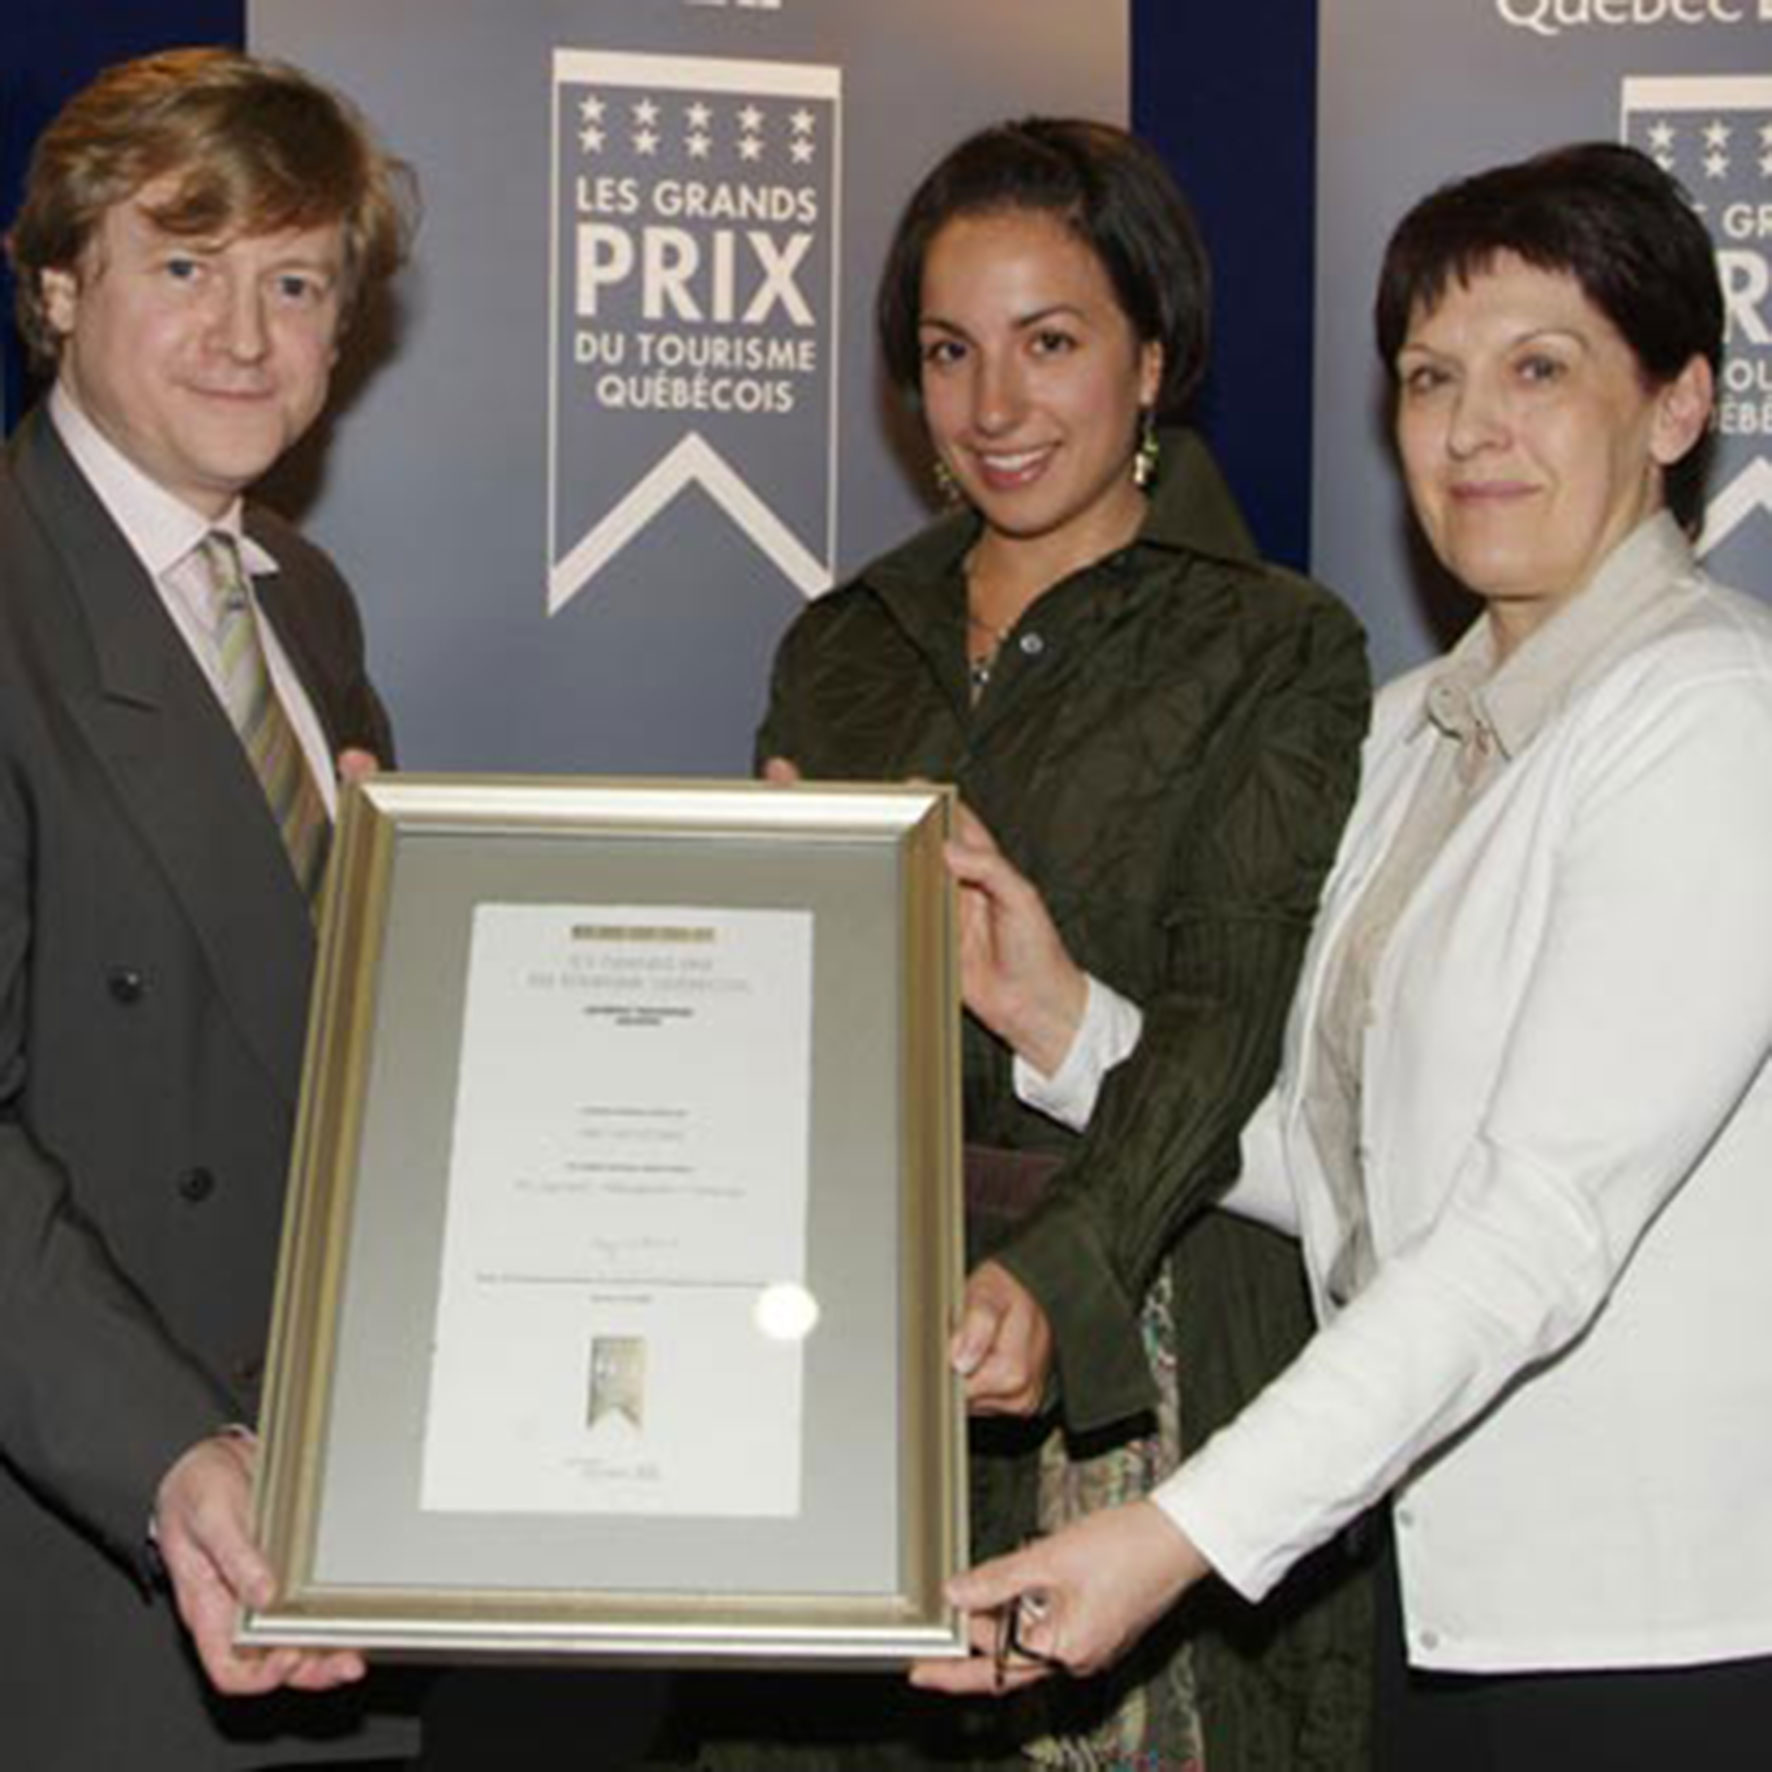 the Personal Brand Architect winning a prize for management